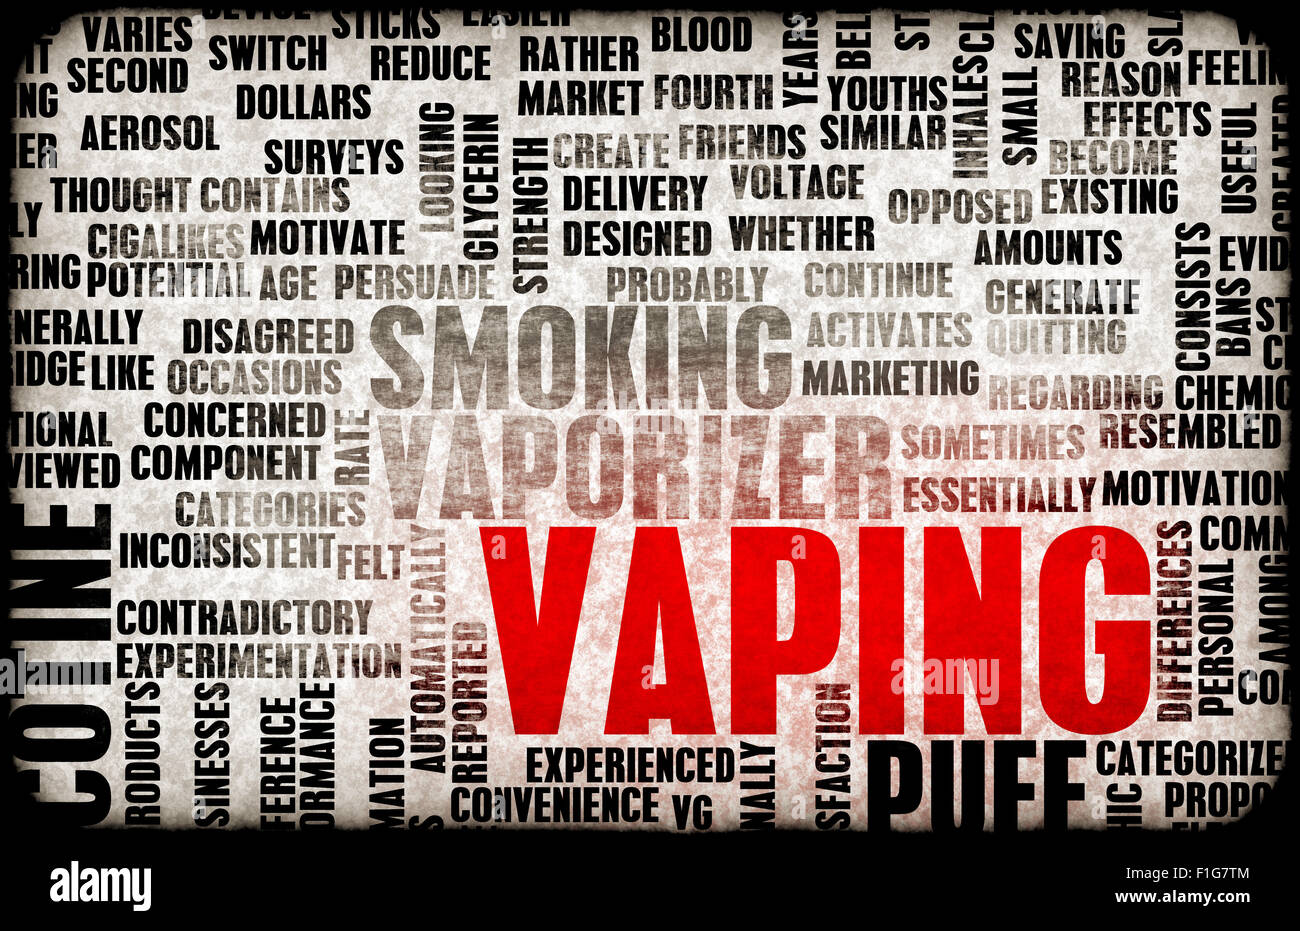 Vaping or an Electronic Cigarette as a Concept - Stock Image